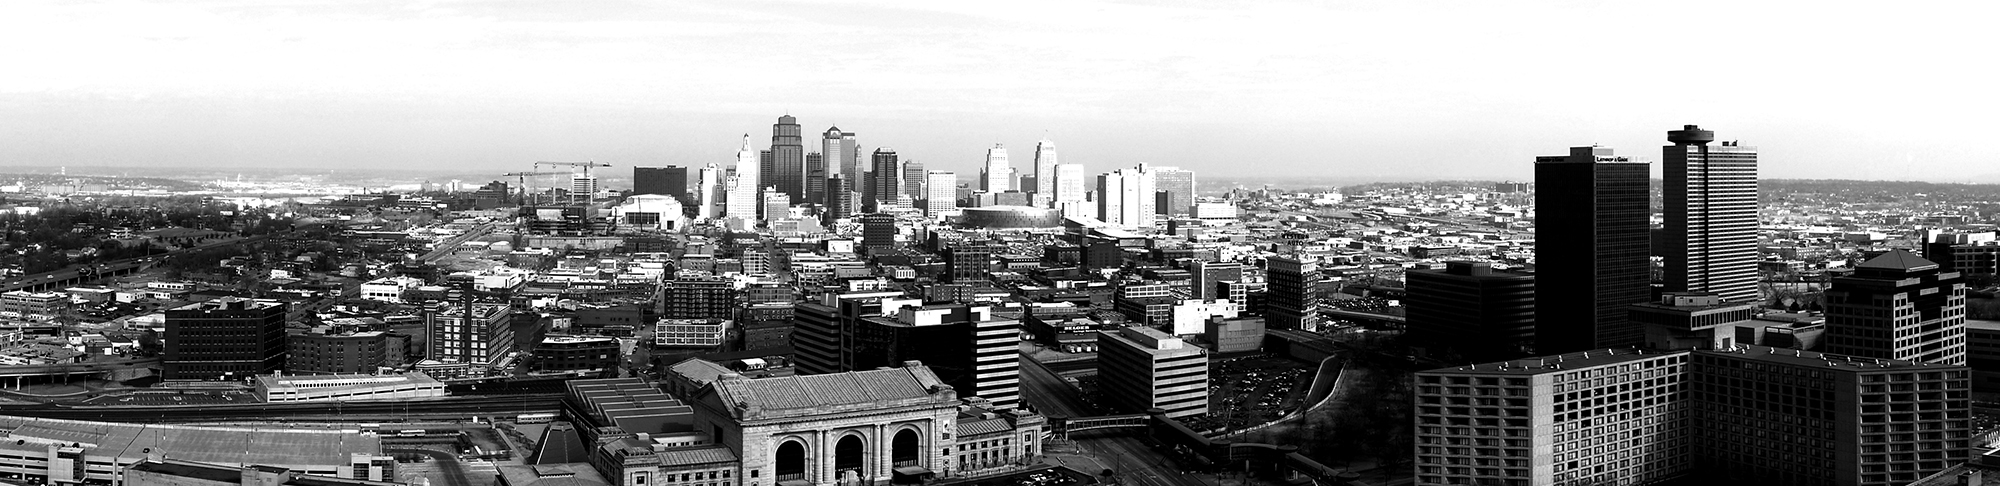 Downtown Kansas City, Missouri